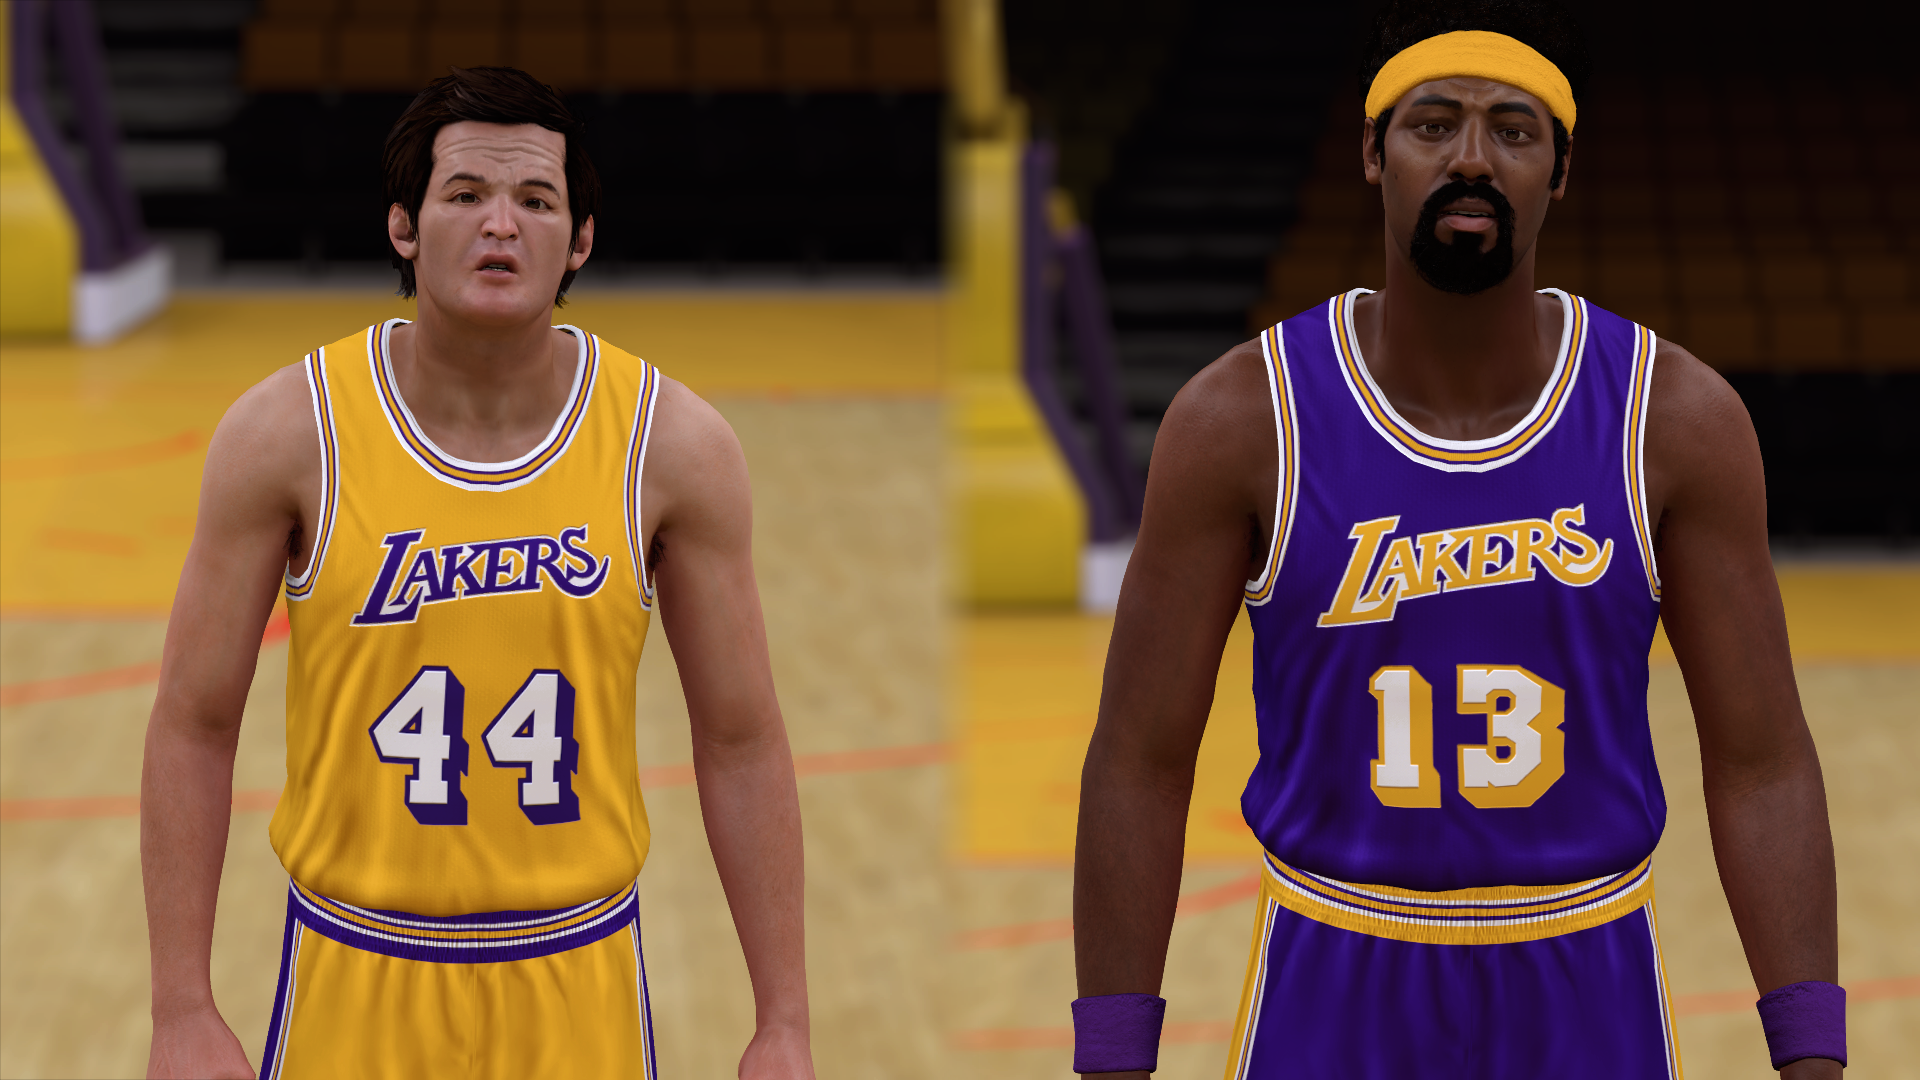 1970-1971 Lakers Jerseys - PeacemanNOT